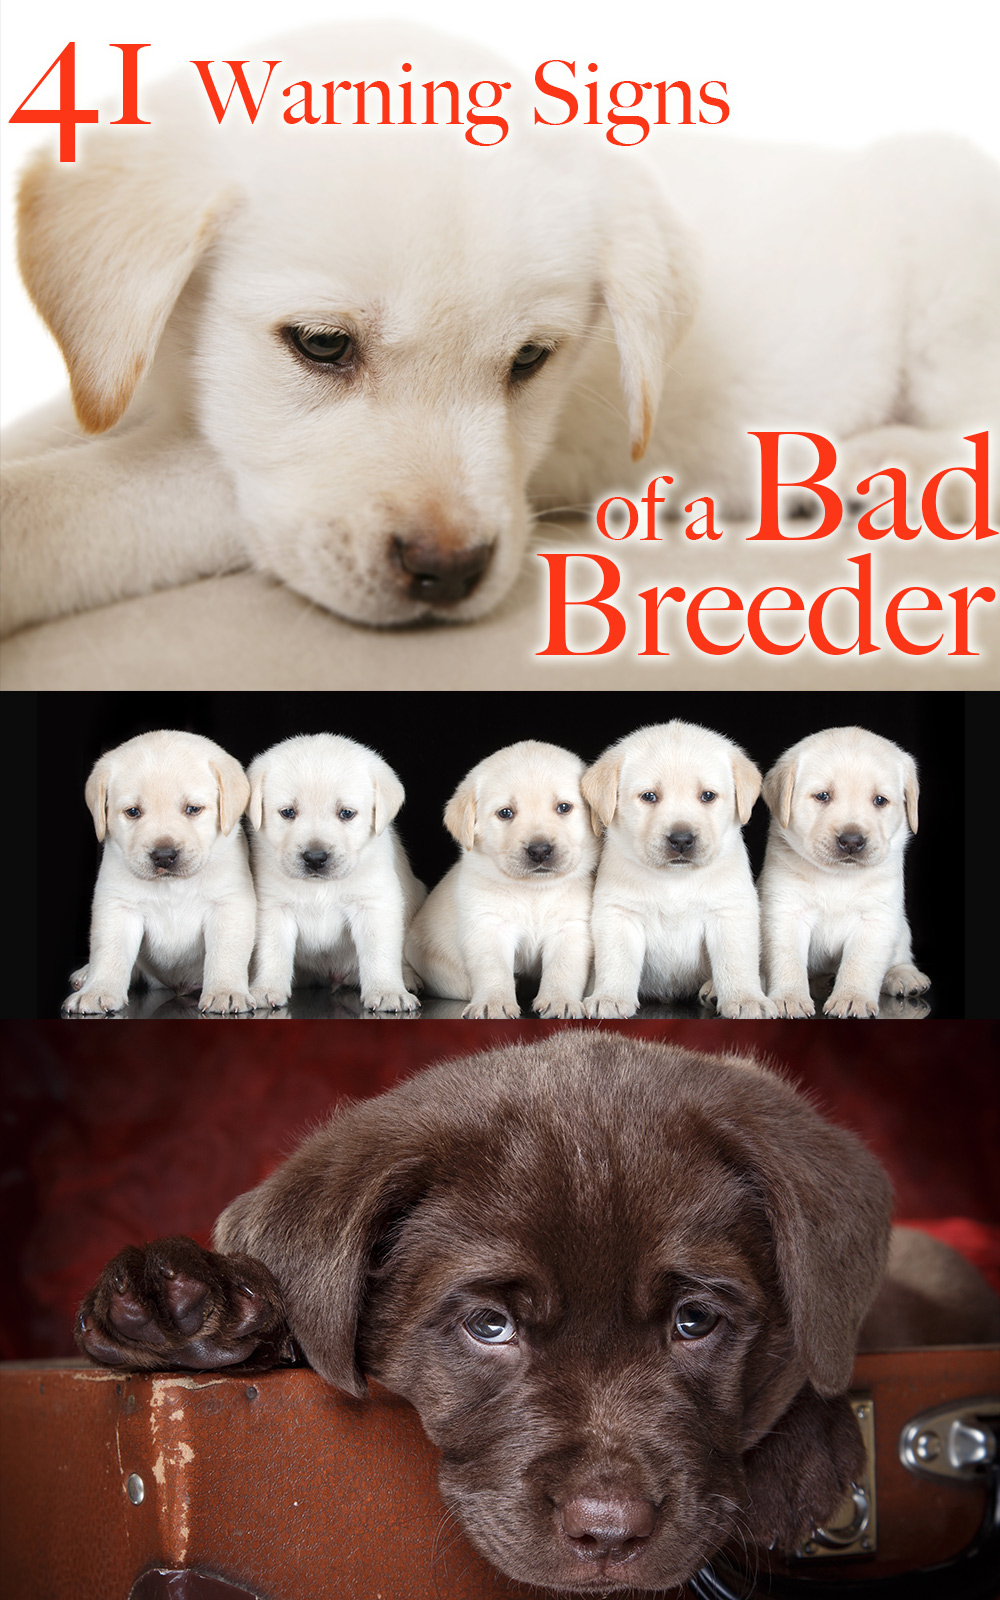 41 Ways To Spot A Bad Labrador Breeder - The Labrador Site